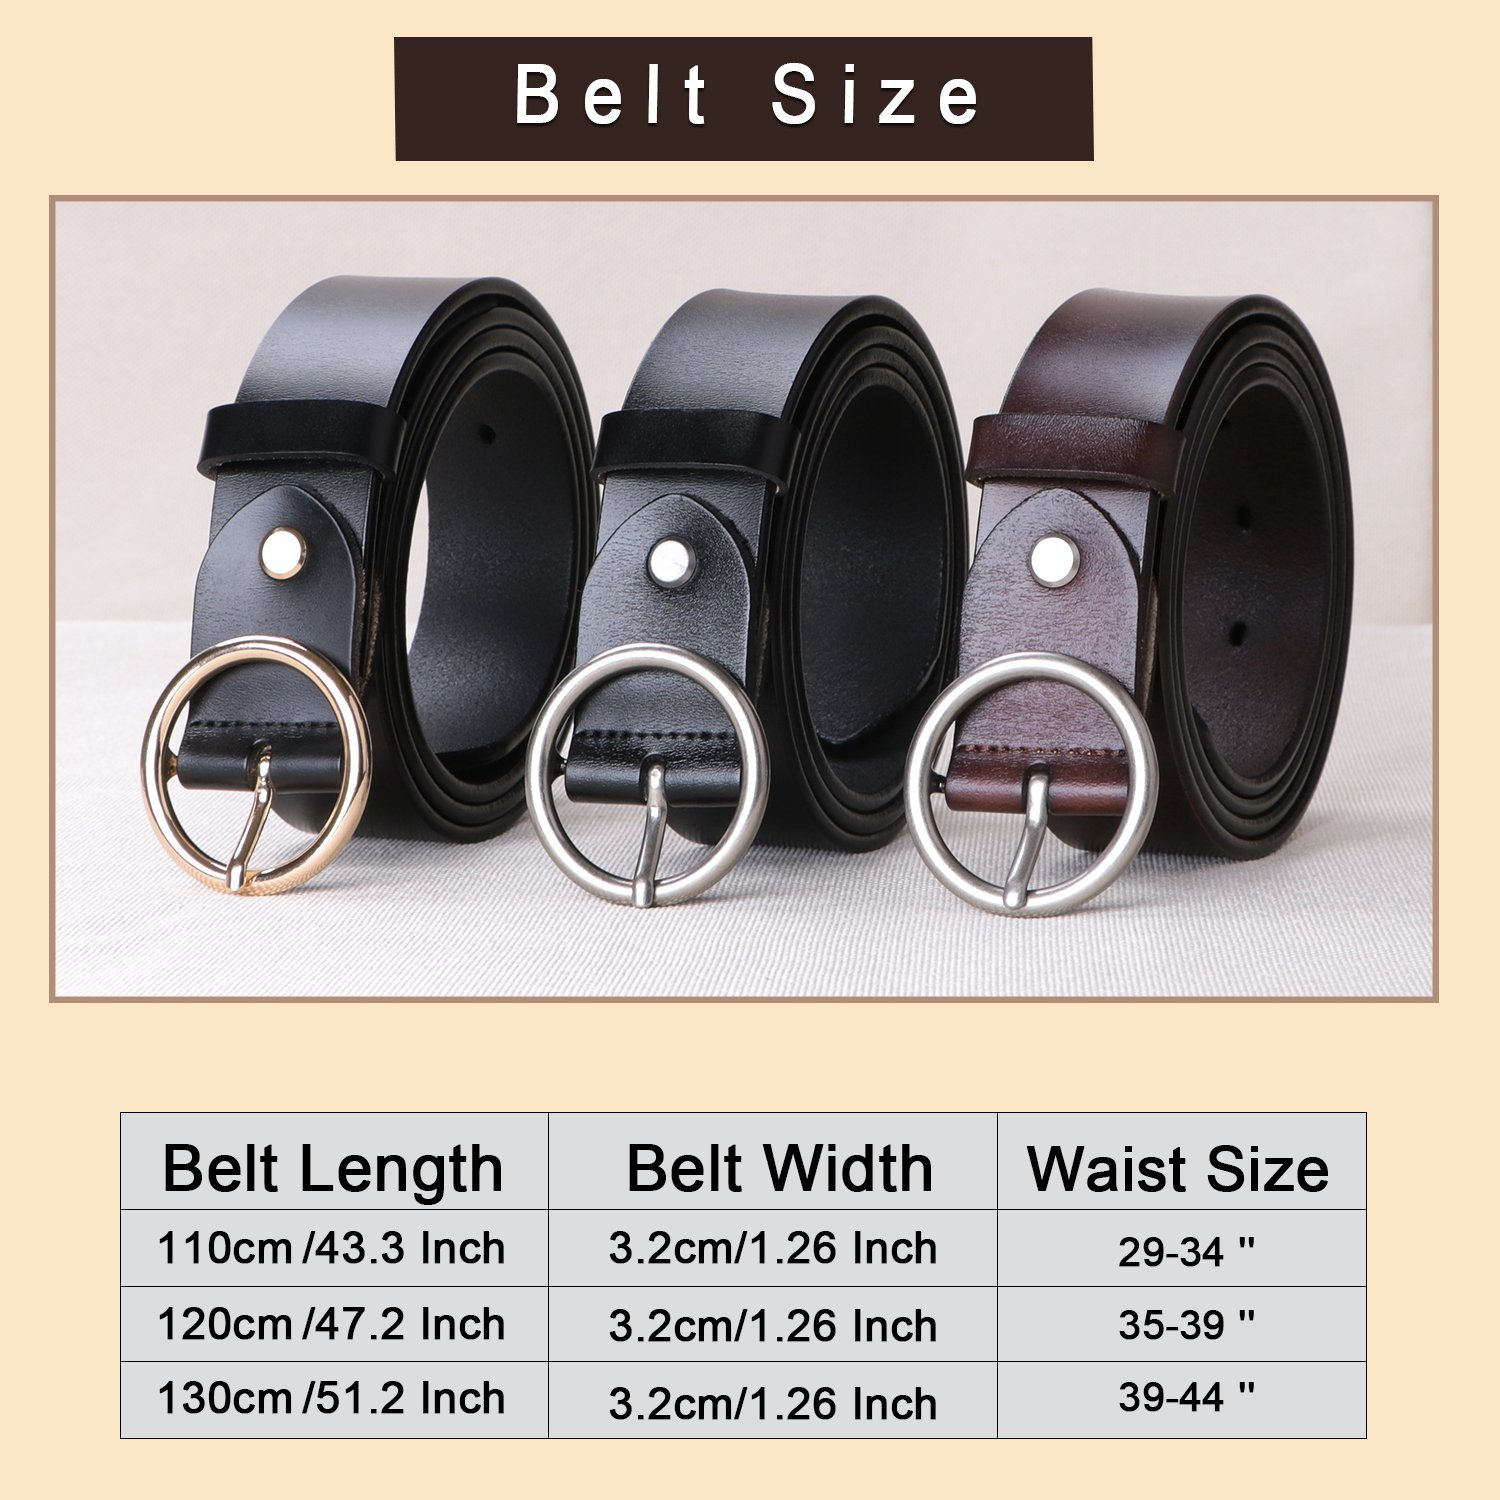 Women Black Leather Belt for Jeans,Fashion Belts for Women With Round Buckle By SUOSDEY by SUOSDEY (Image #5)